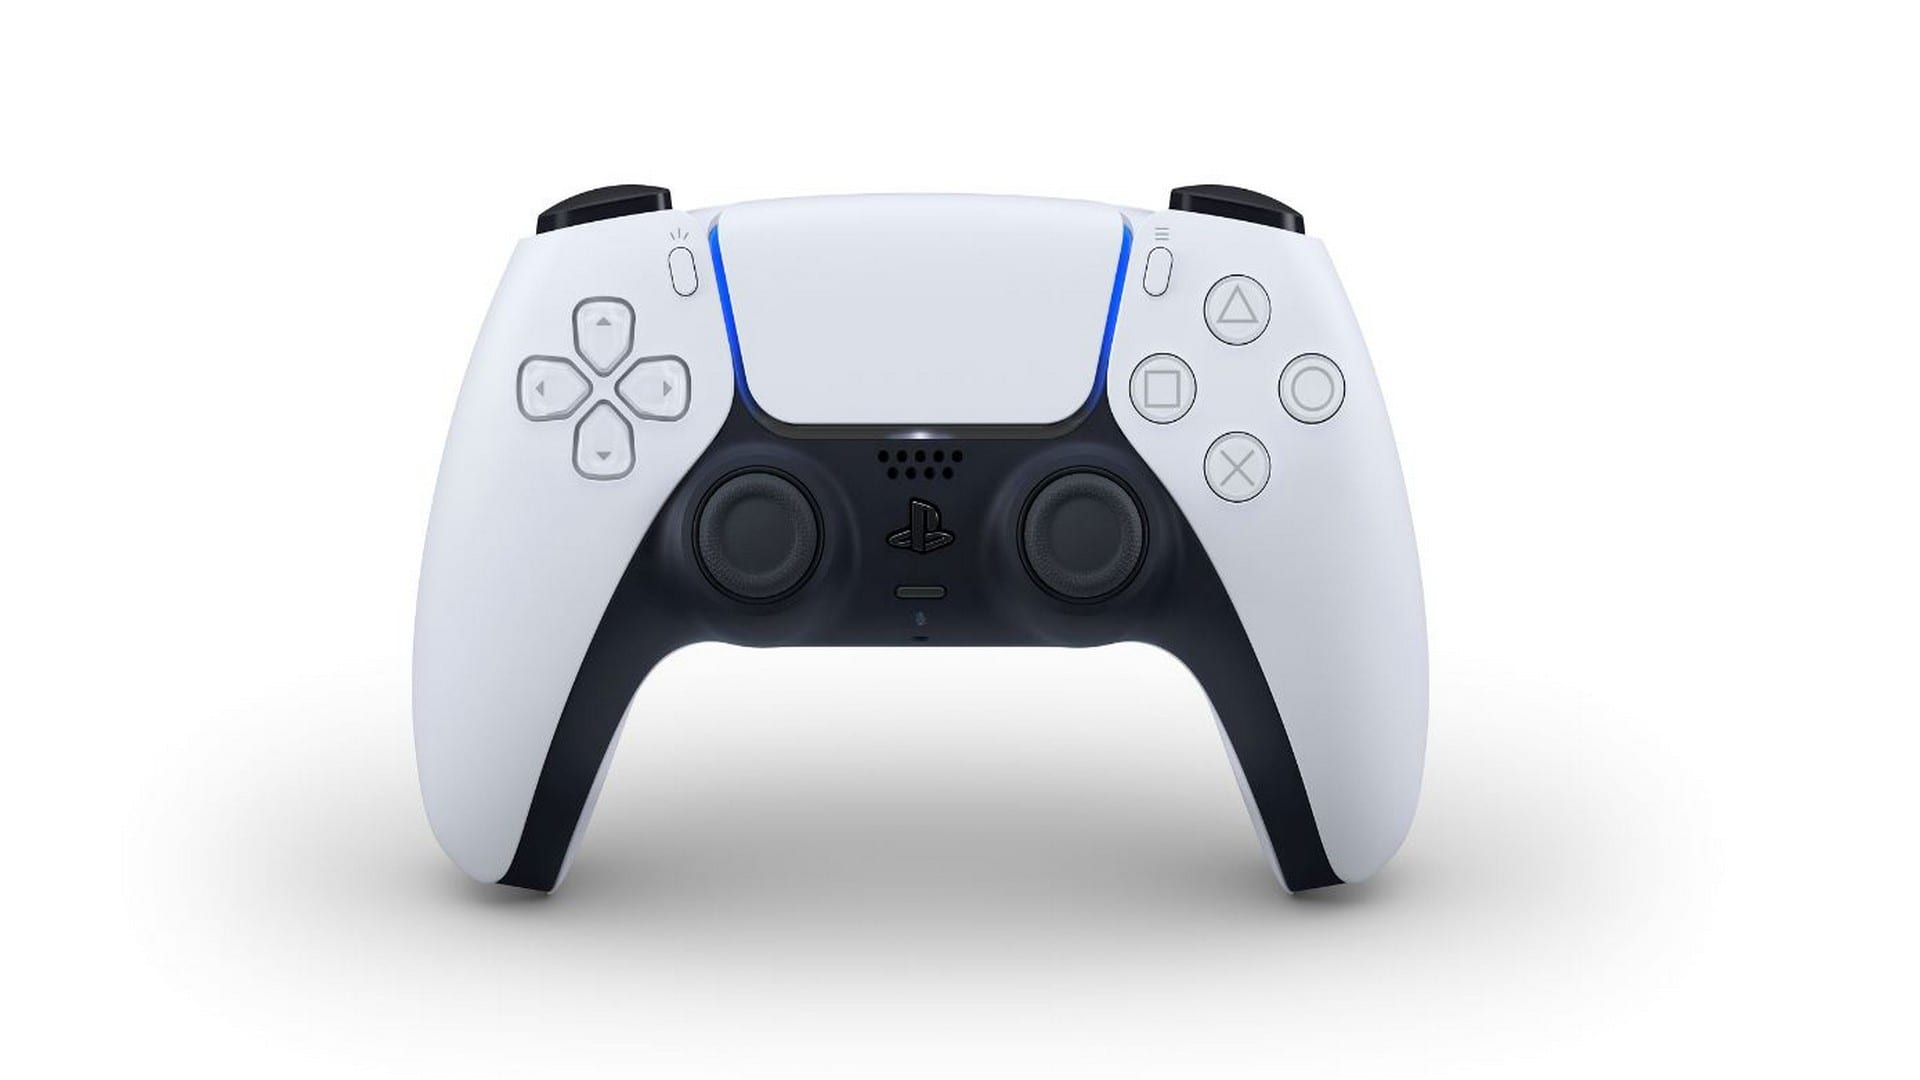 Introducing DualSense, The New Wireless Game Controller for PlayStation 5